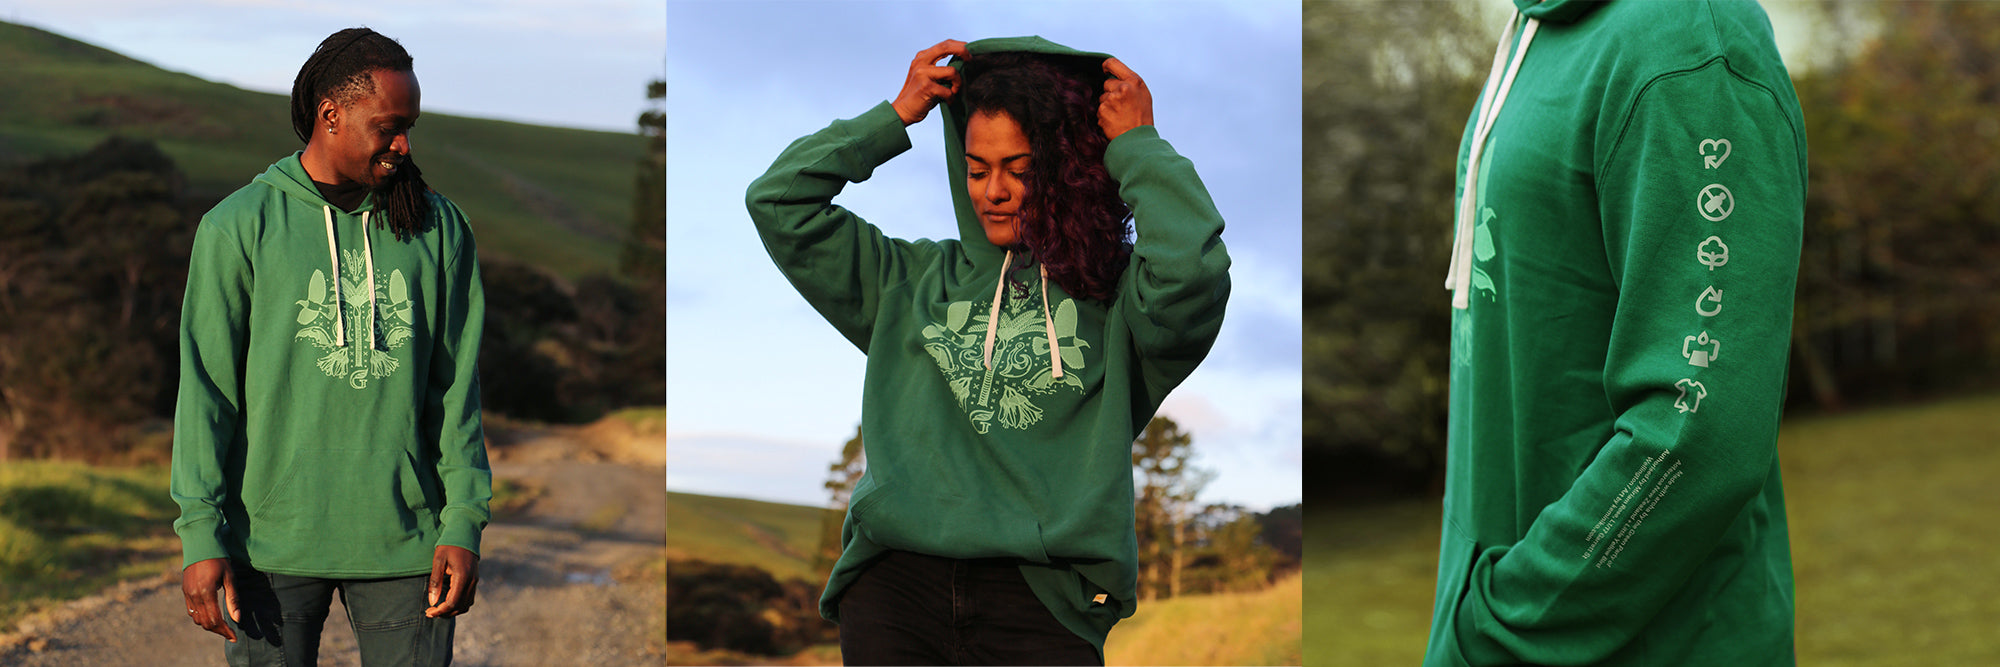 Three images of the hoodie, showing the front and the sleeve print